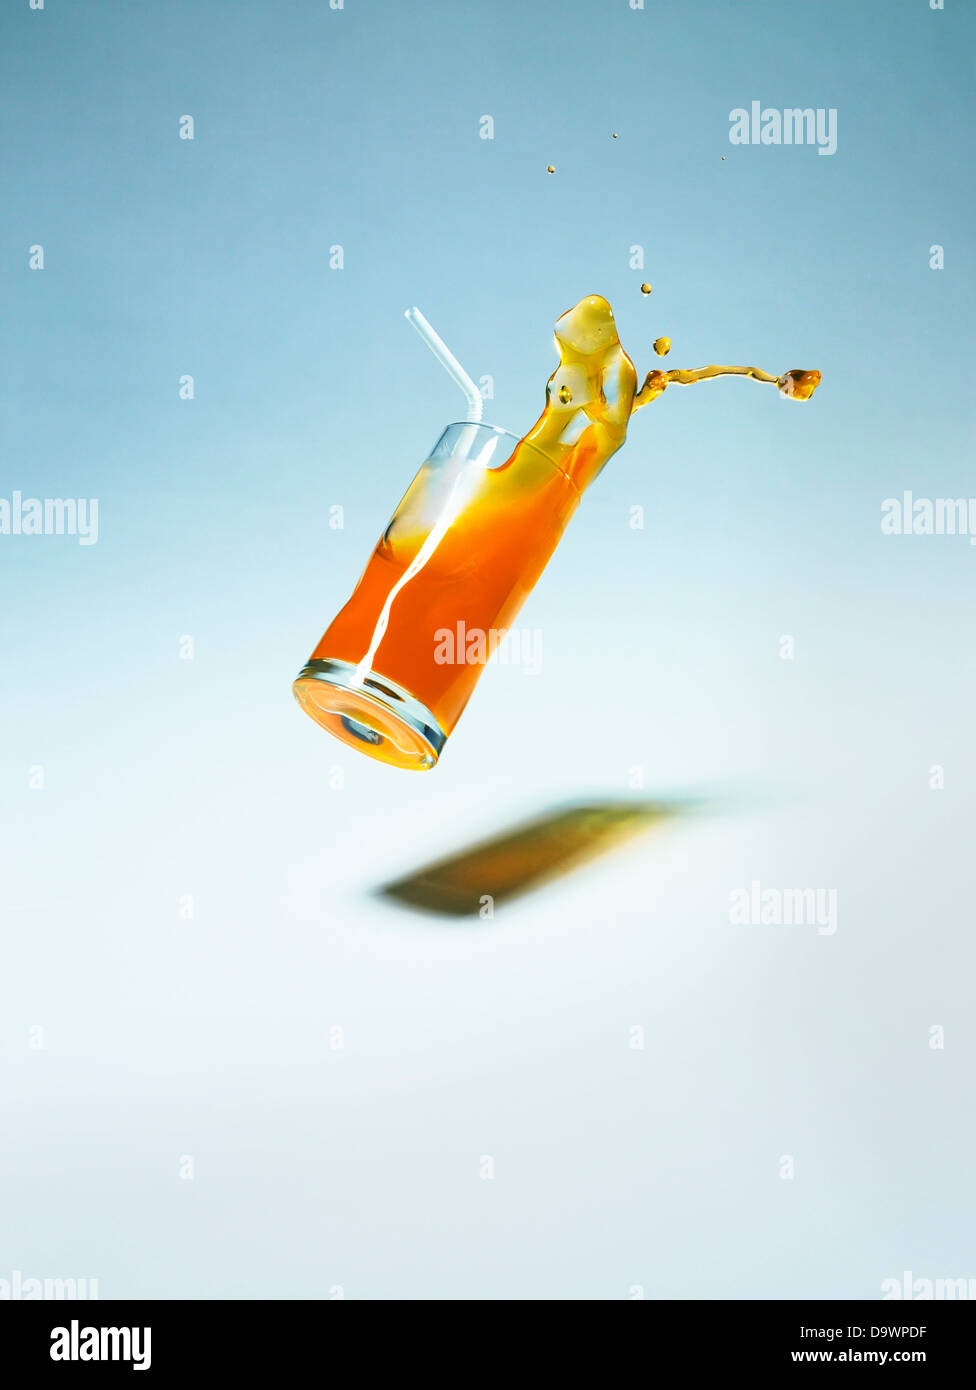 falling drink - Stock Image